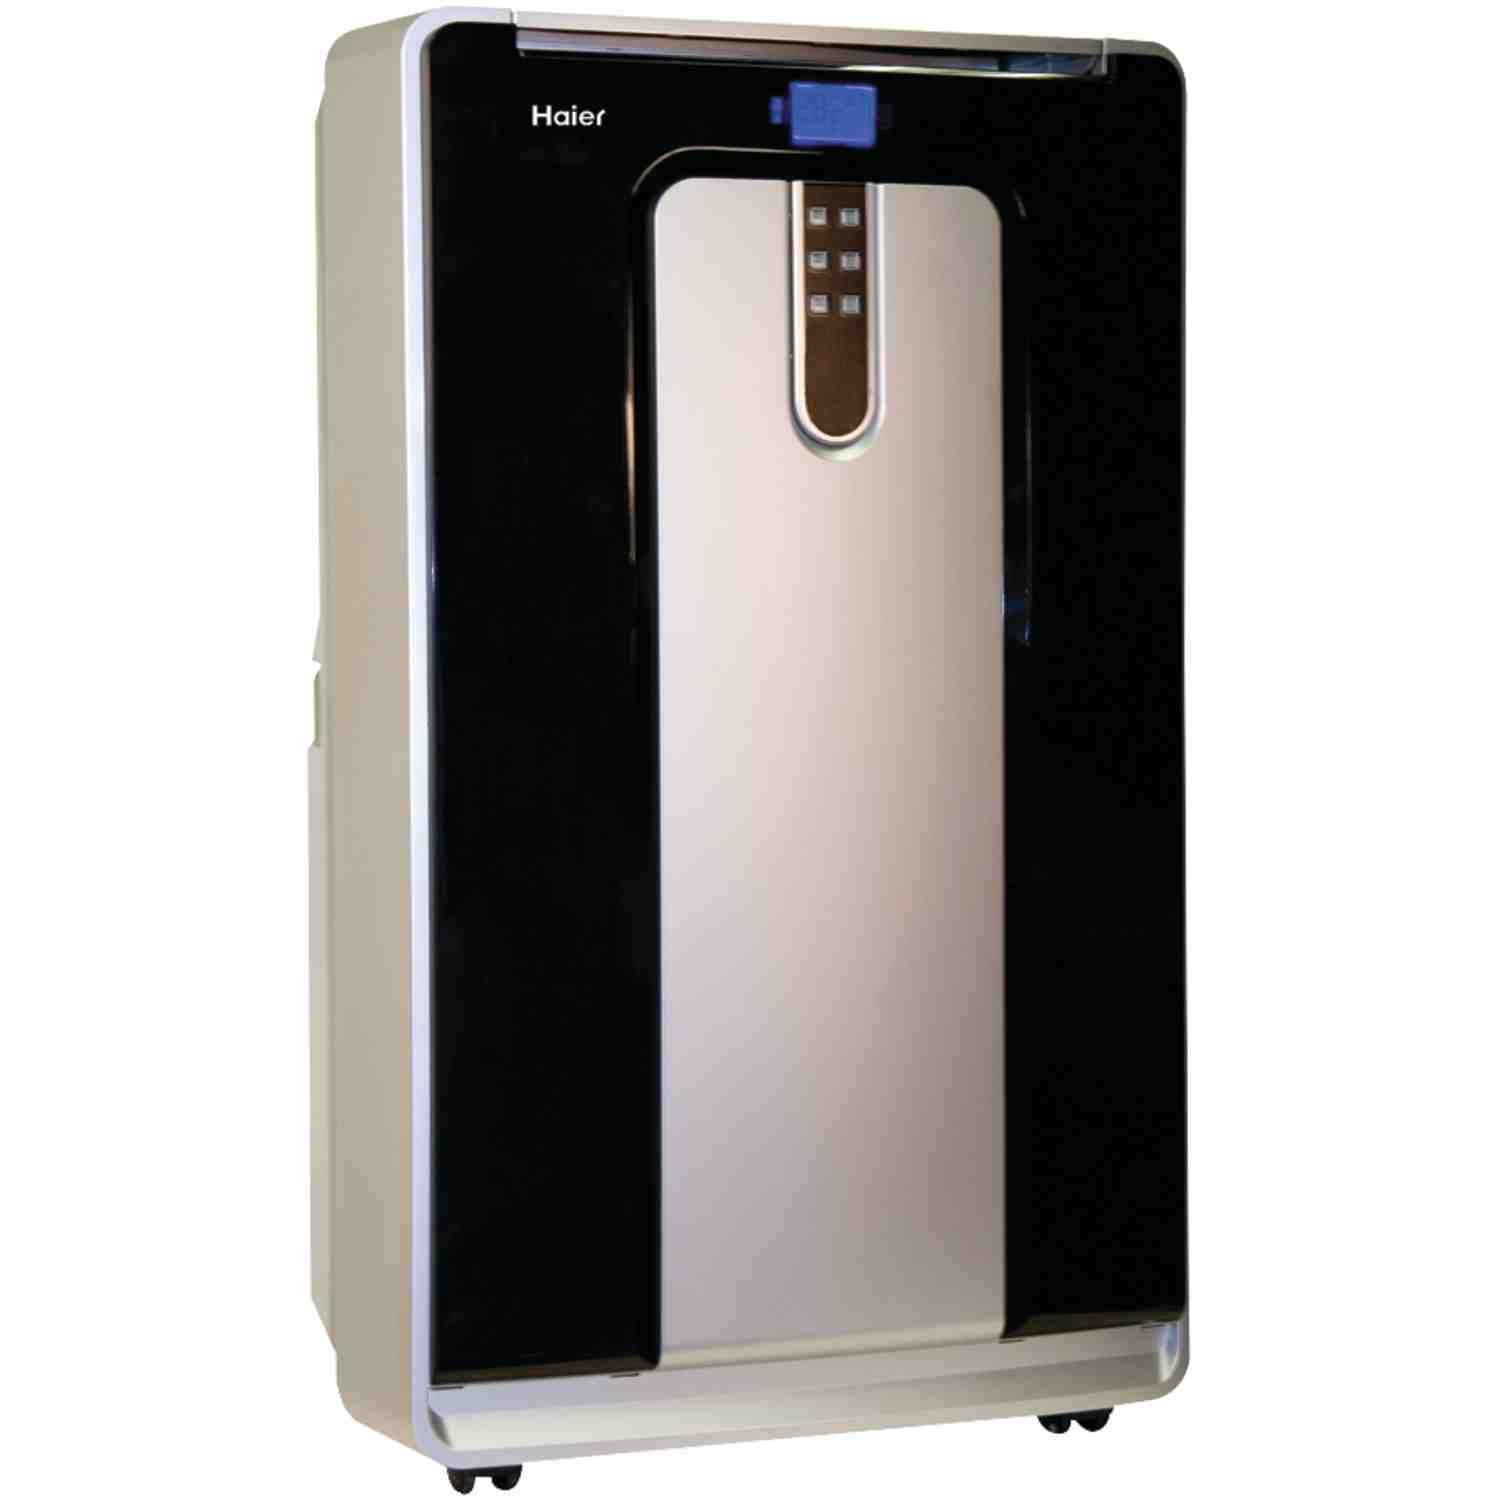 haier portable air conditioner instructions